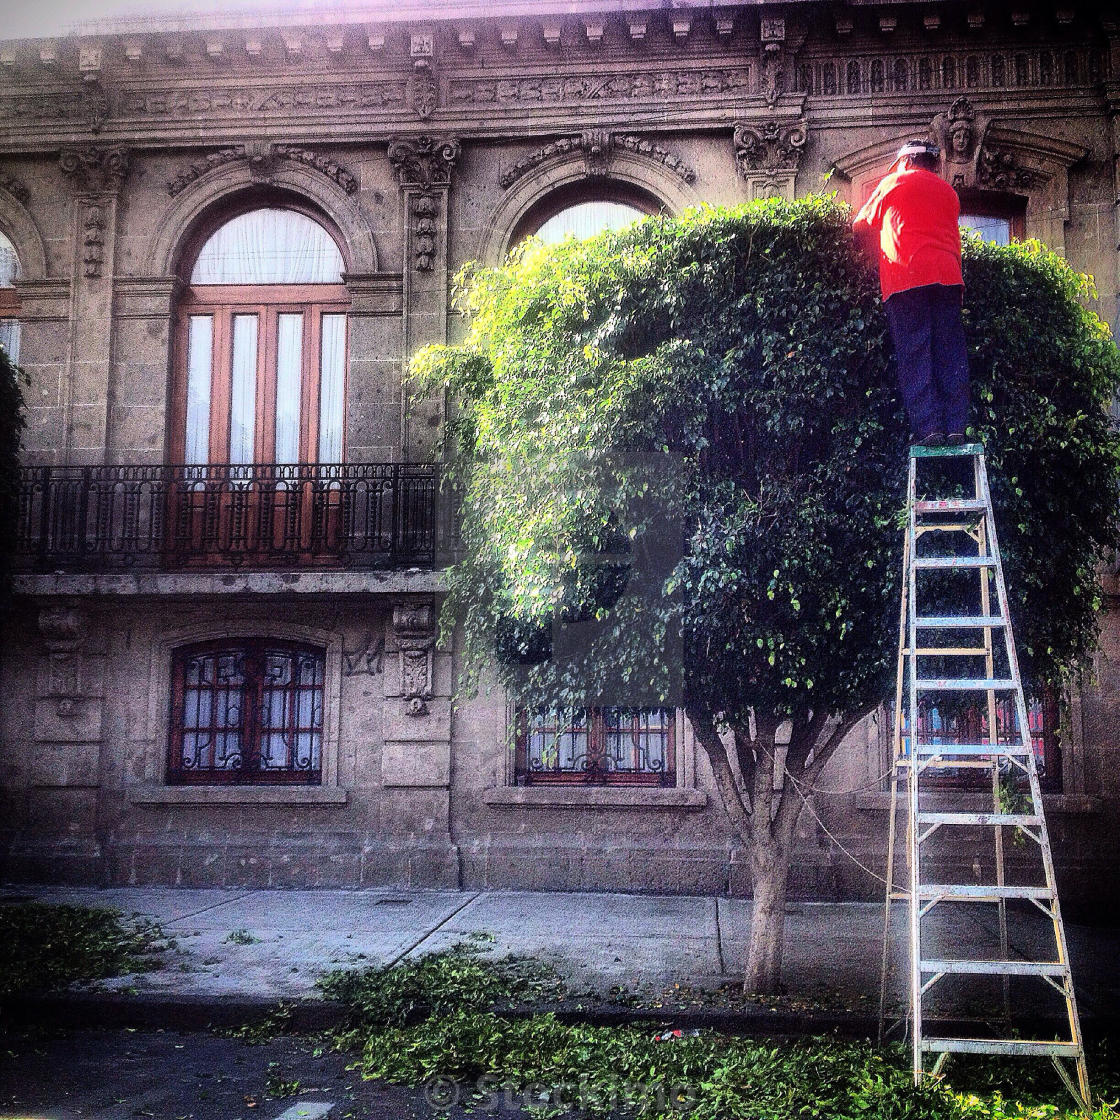 """""""A man overprunning a tree in Mexico City, Mexico. Overprunning damages trees and is a cause of air pollution because branches clean the air."""" stock image"""